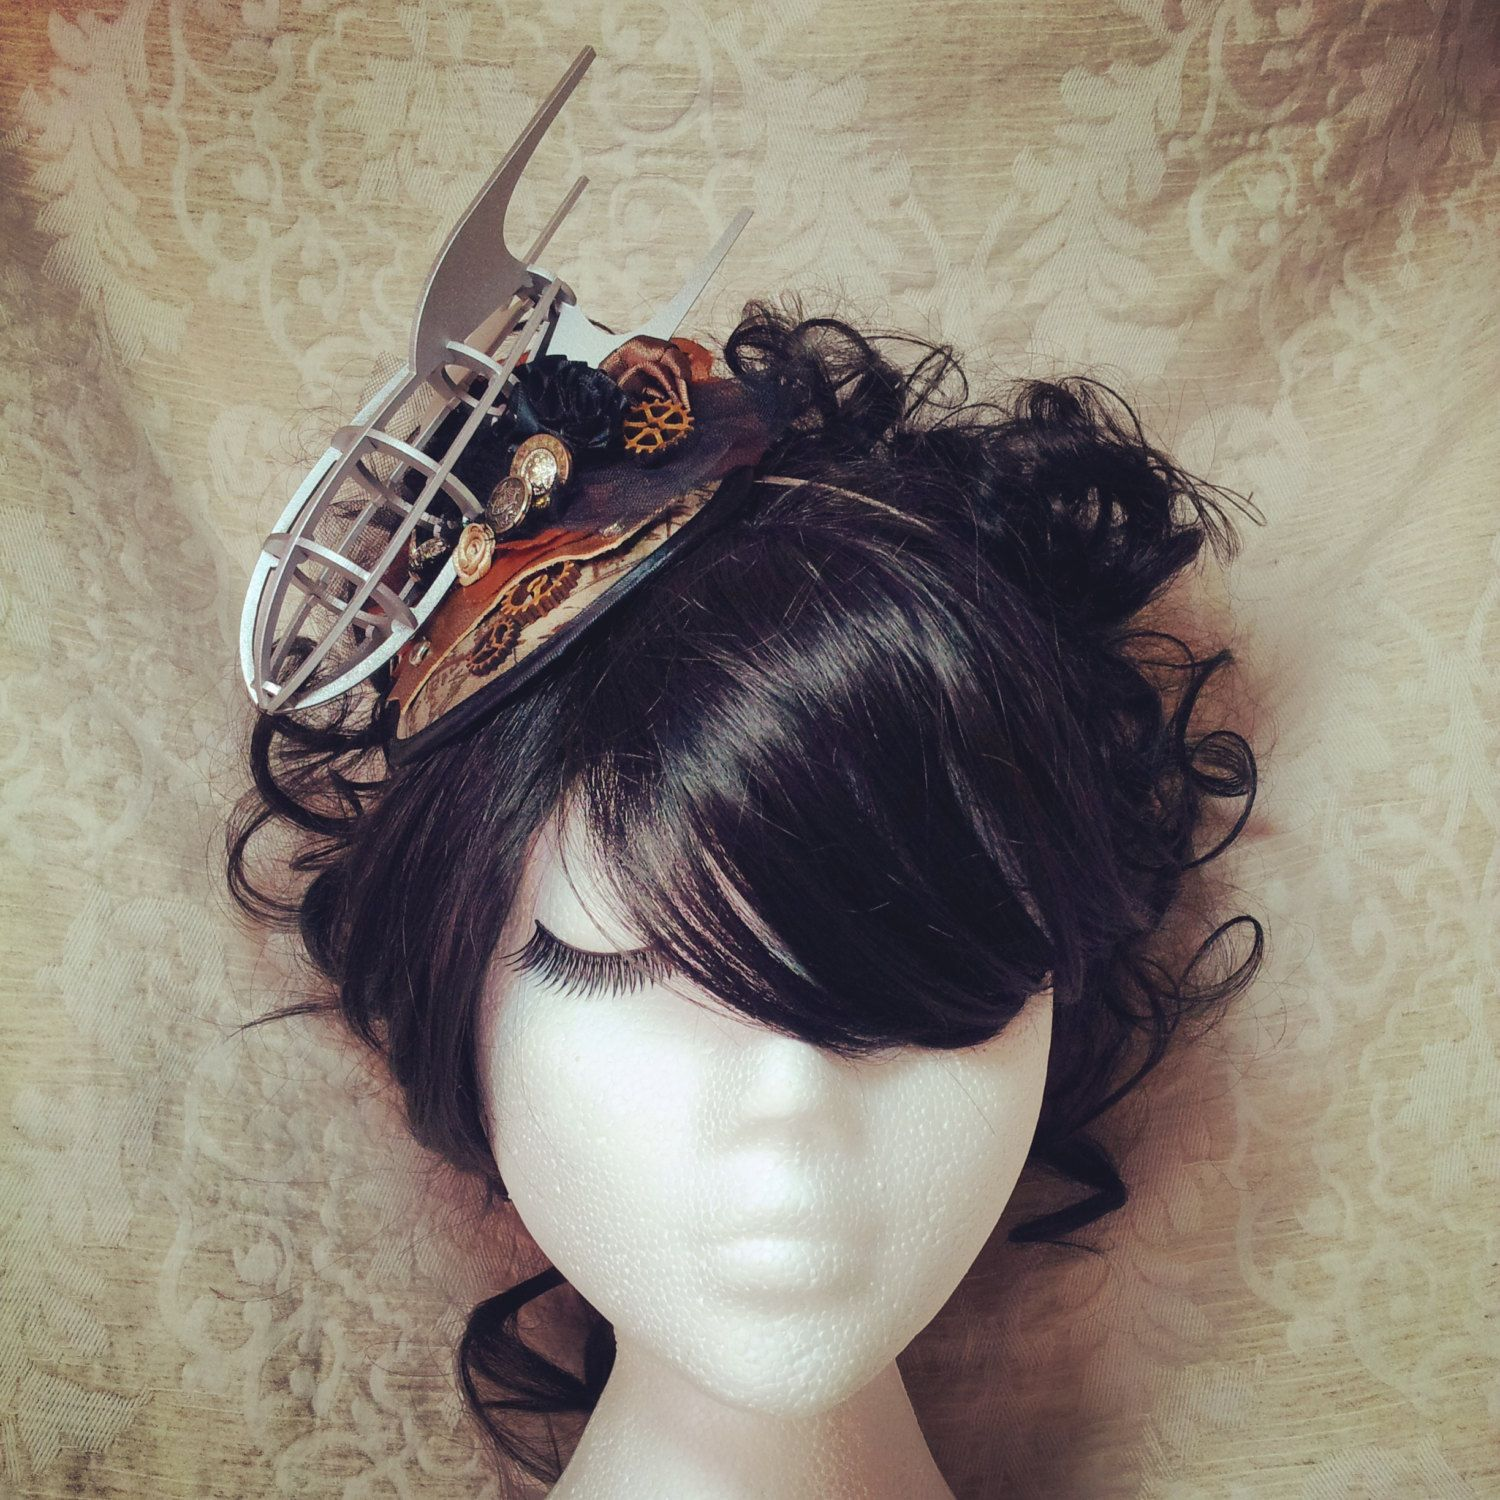 Steampunk Fascinator, Steampunk Headband, Steampunk Hat, Fascinator, Steampunk Wedding, Airship, Dirigible, Zeppelin, Pirate, Gothic Lolita by OohLaLaBoudoir on Etsy